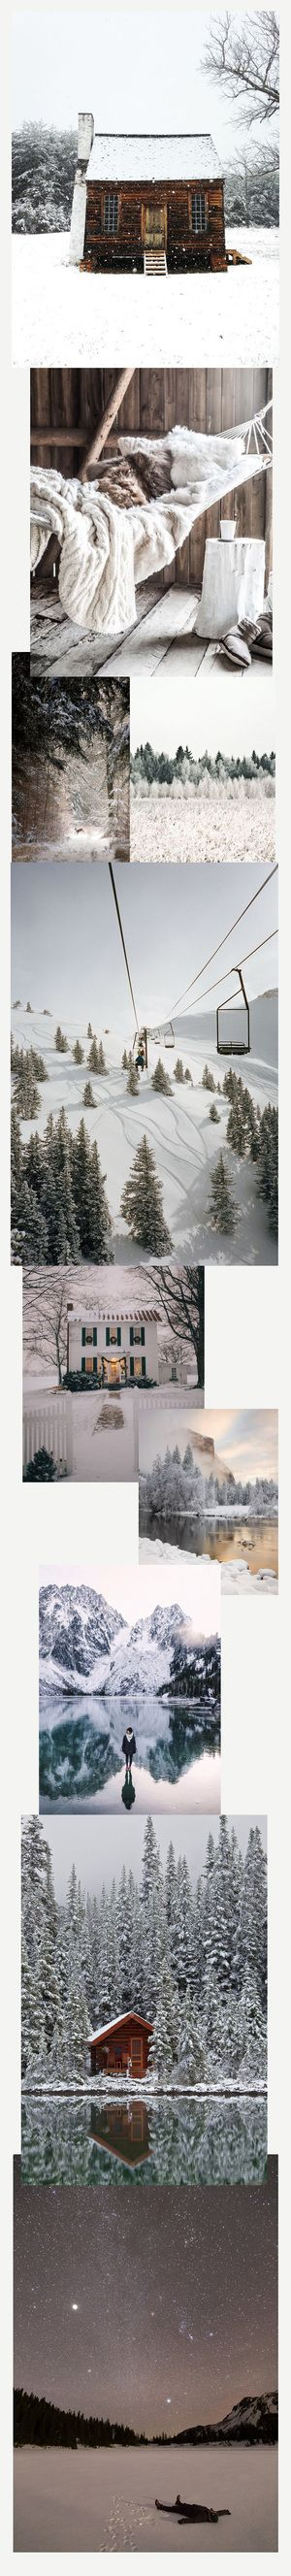 Travel Daydreaming: Winter Wonderland by The Wanderlove Collective